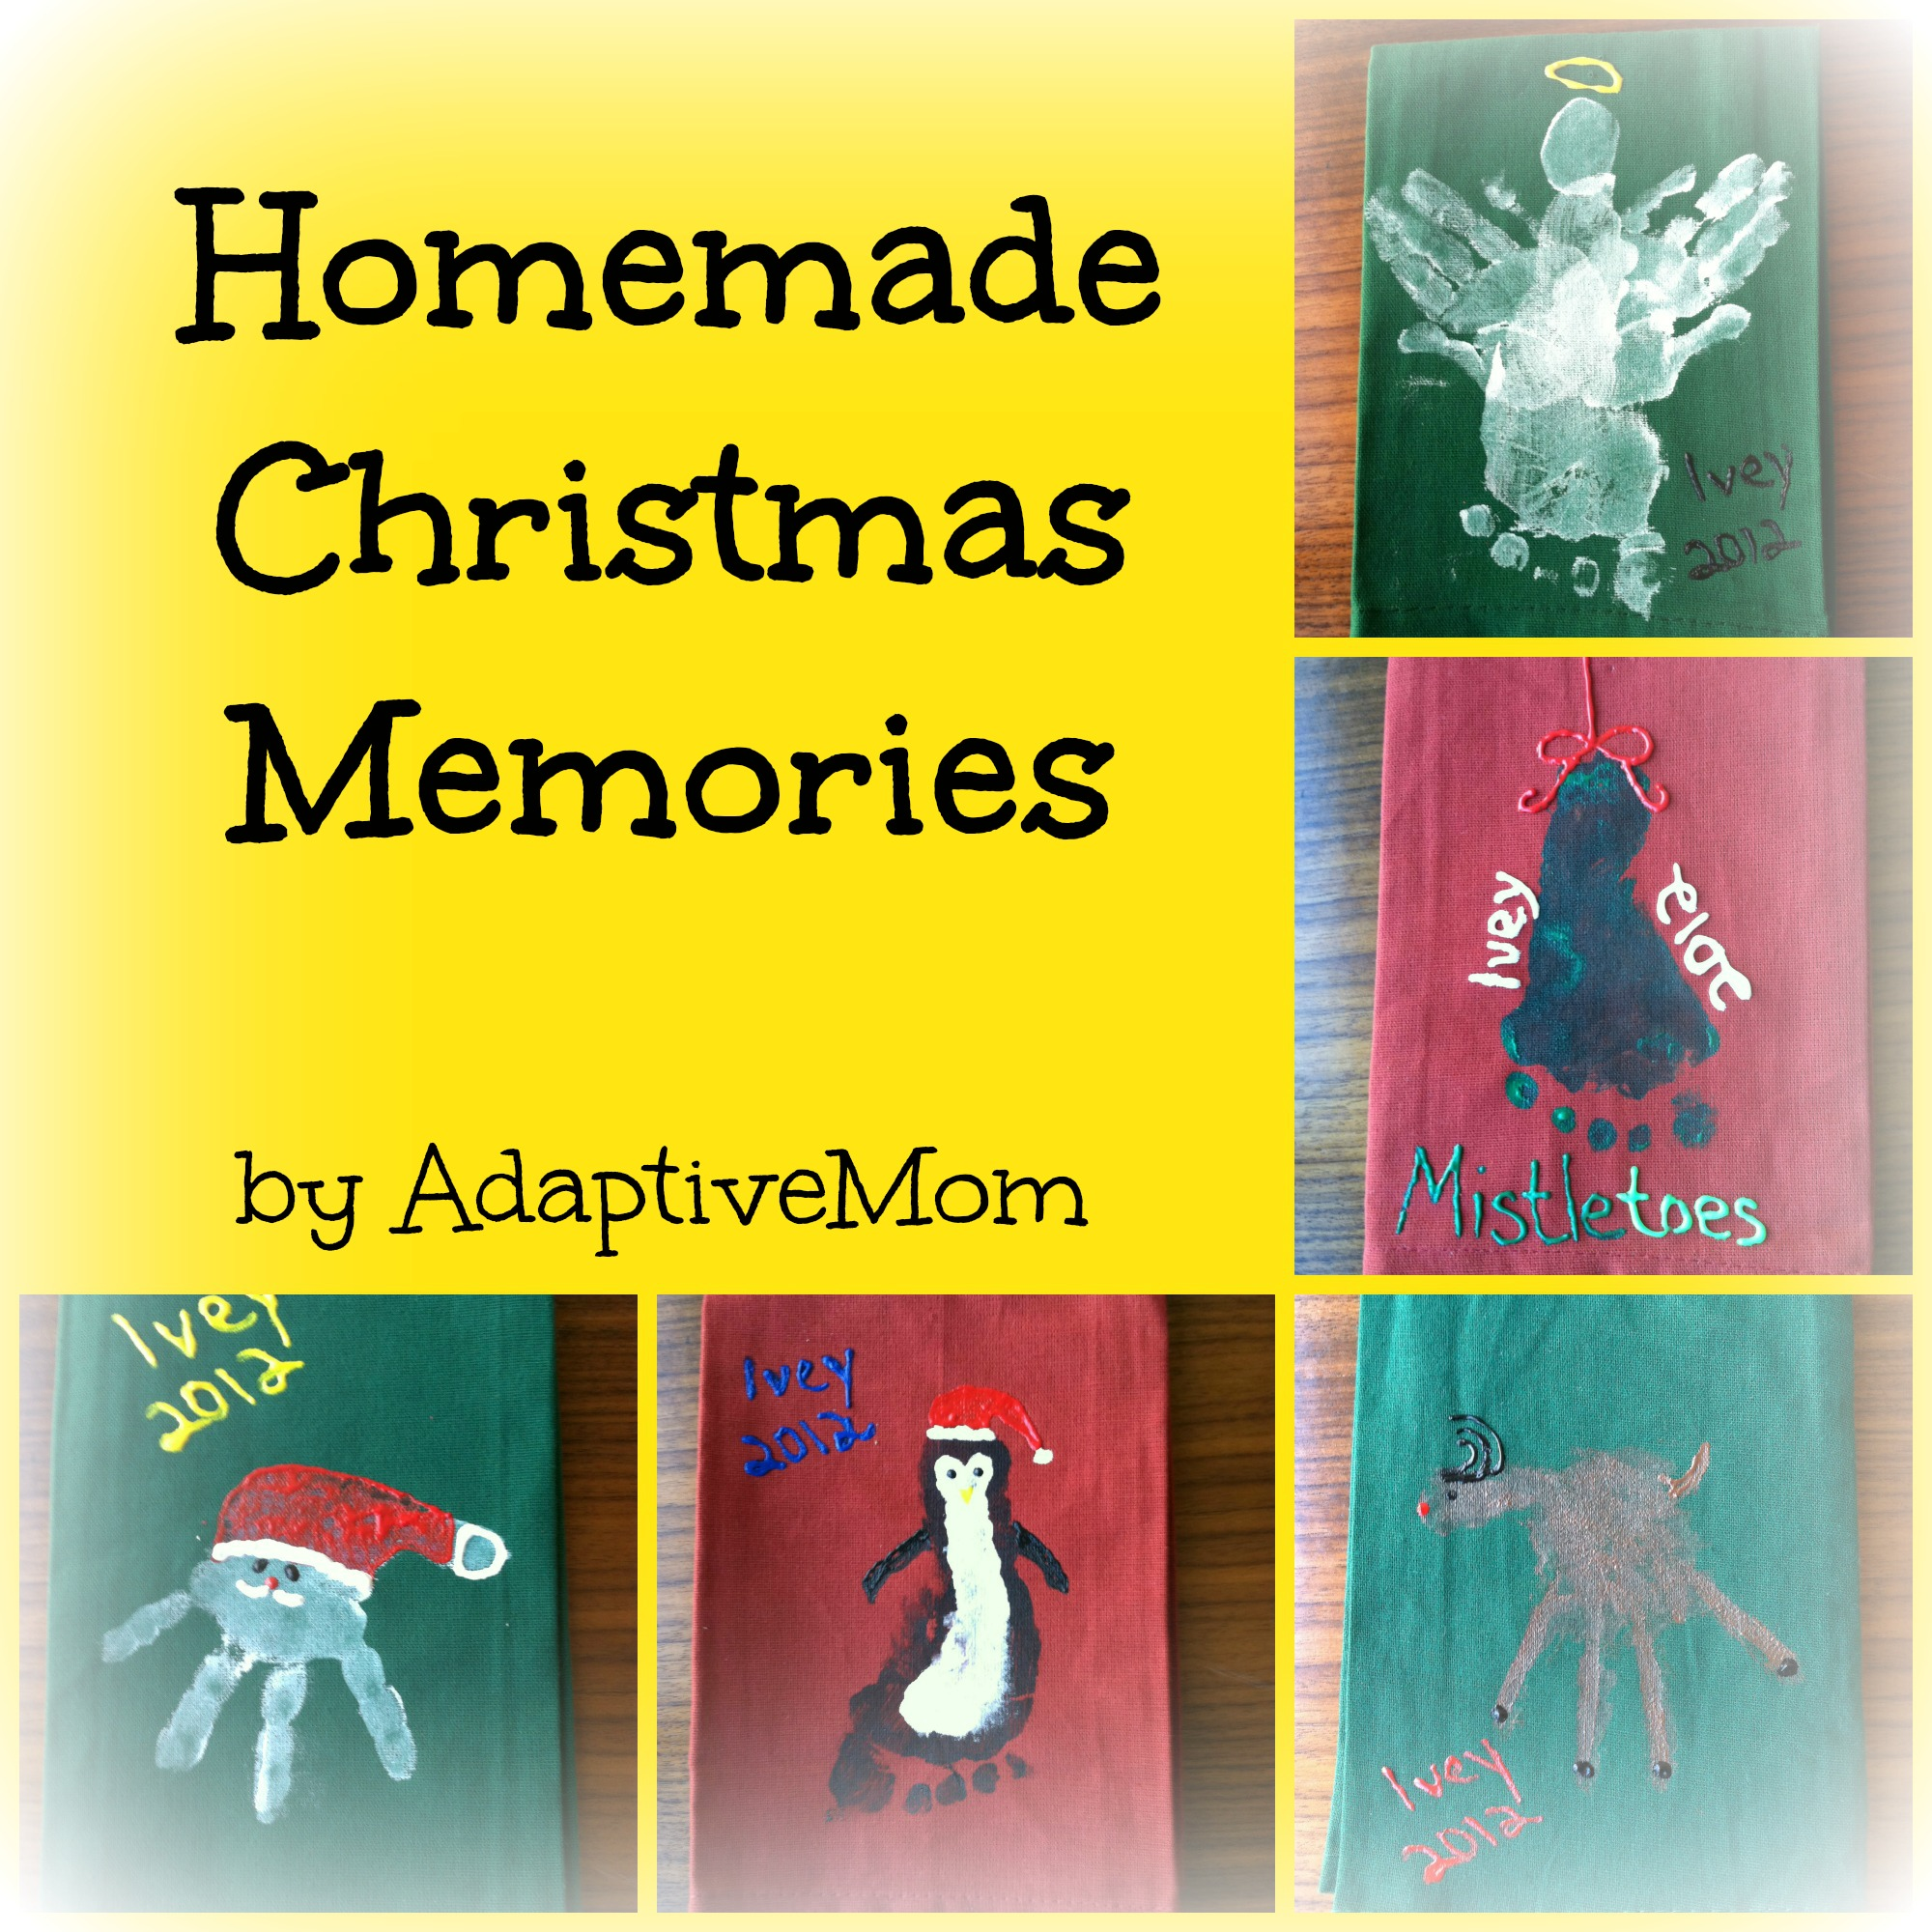 Homemade Christmas Memories - The Adaptive Mom